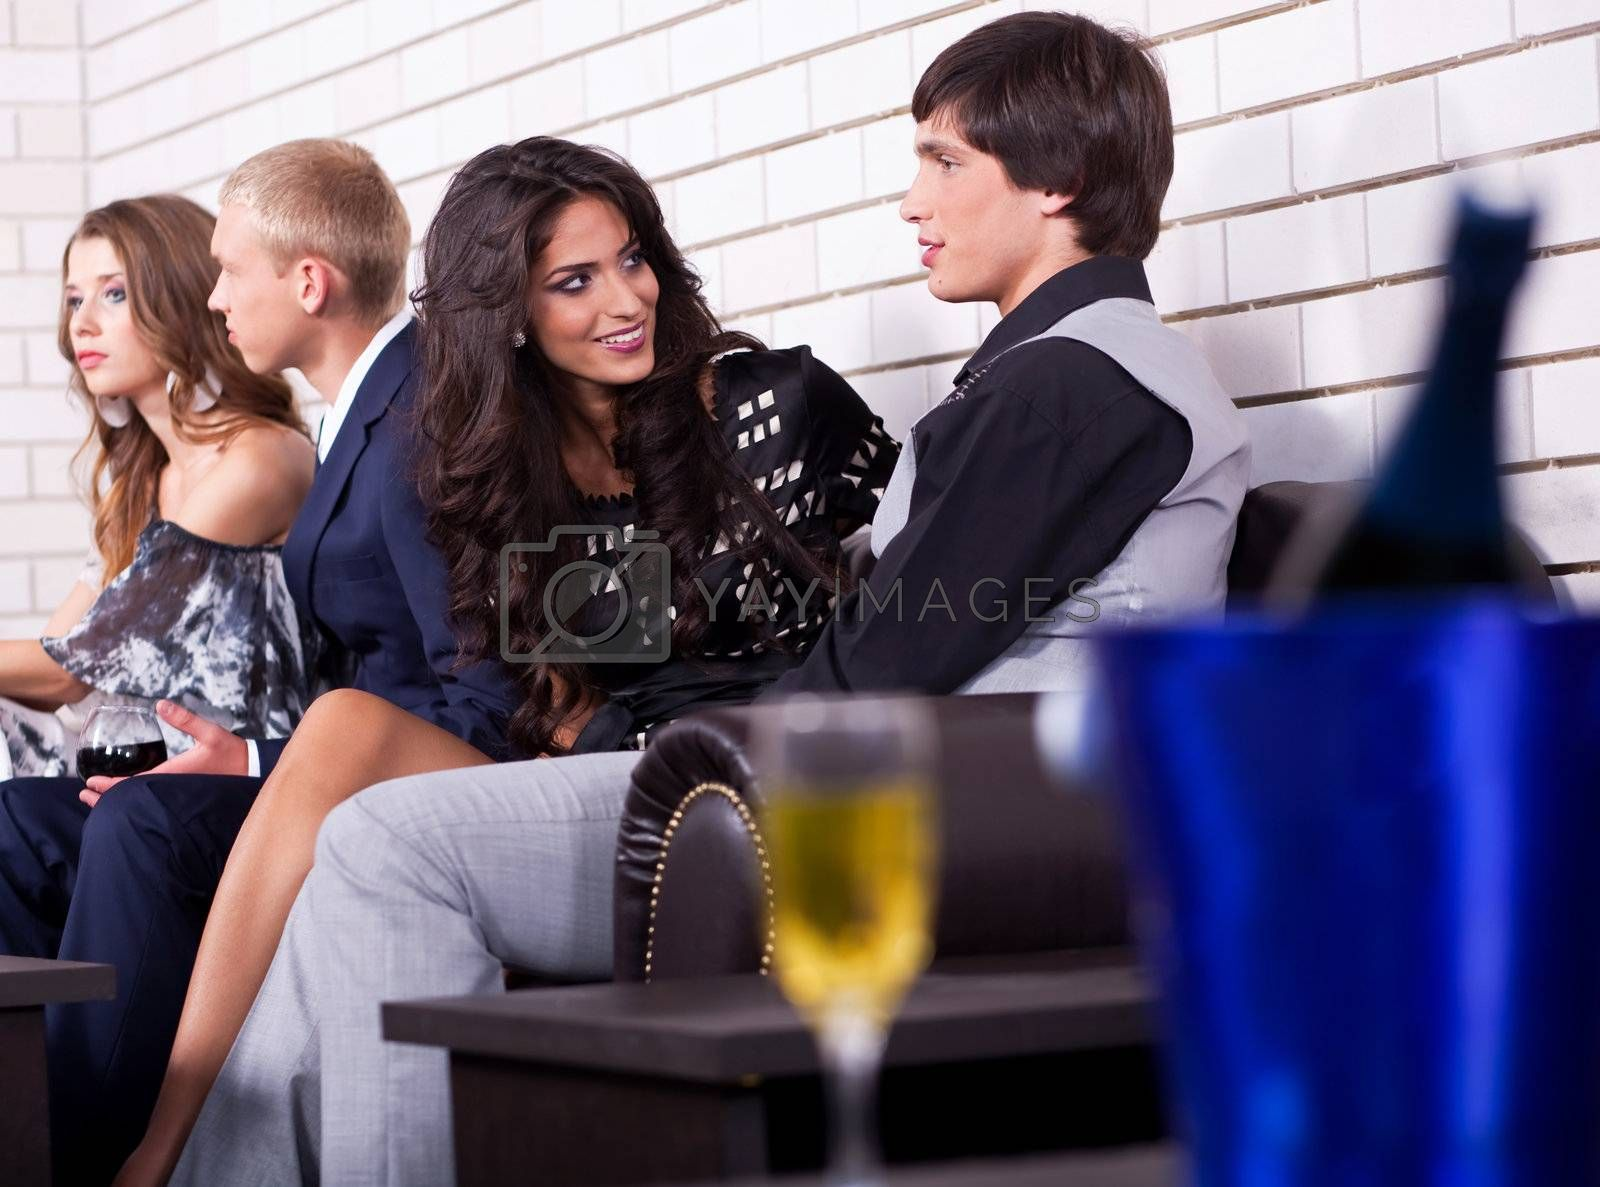 Group of people at party, sit on couch and talk